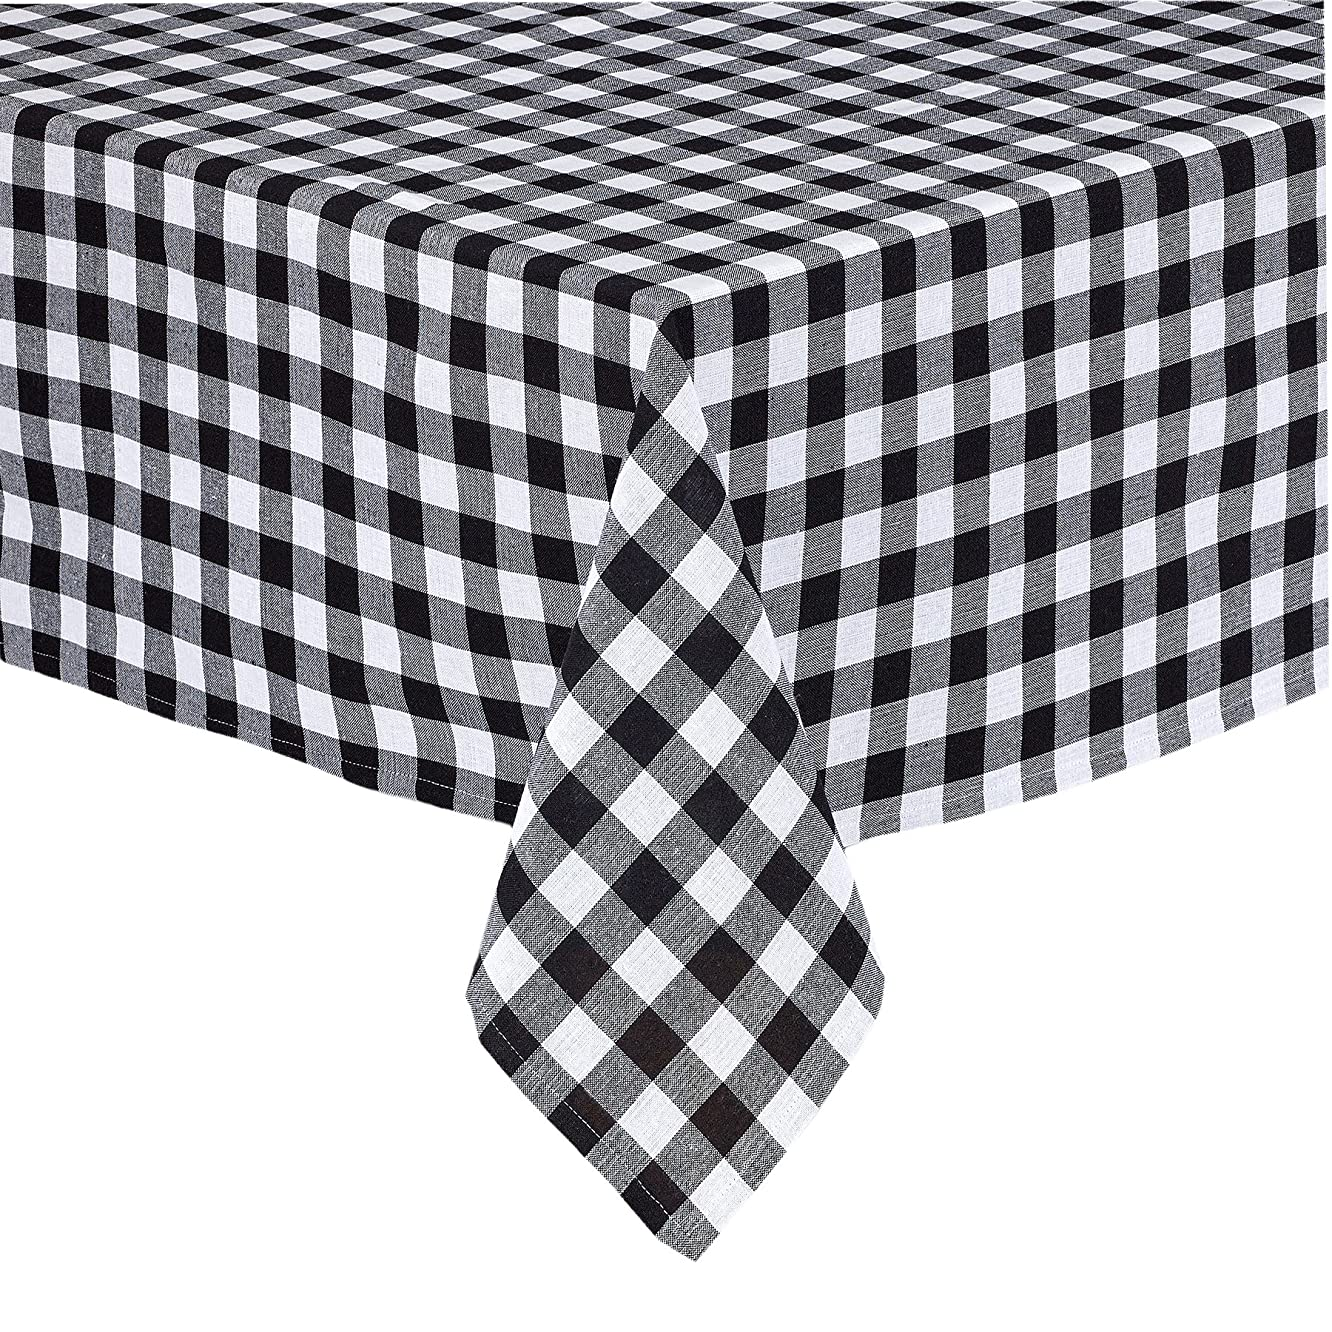 Lintex Buffalo Gingham Check Indoor/Outdoor Casual Casual Cotton Tablecloth, Buffalo Plaid 100% Cotton Weave Kitchen, Patio and Dining Room Tablecloth, 52 x 52 Square, Black